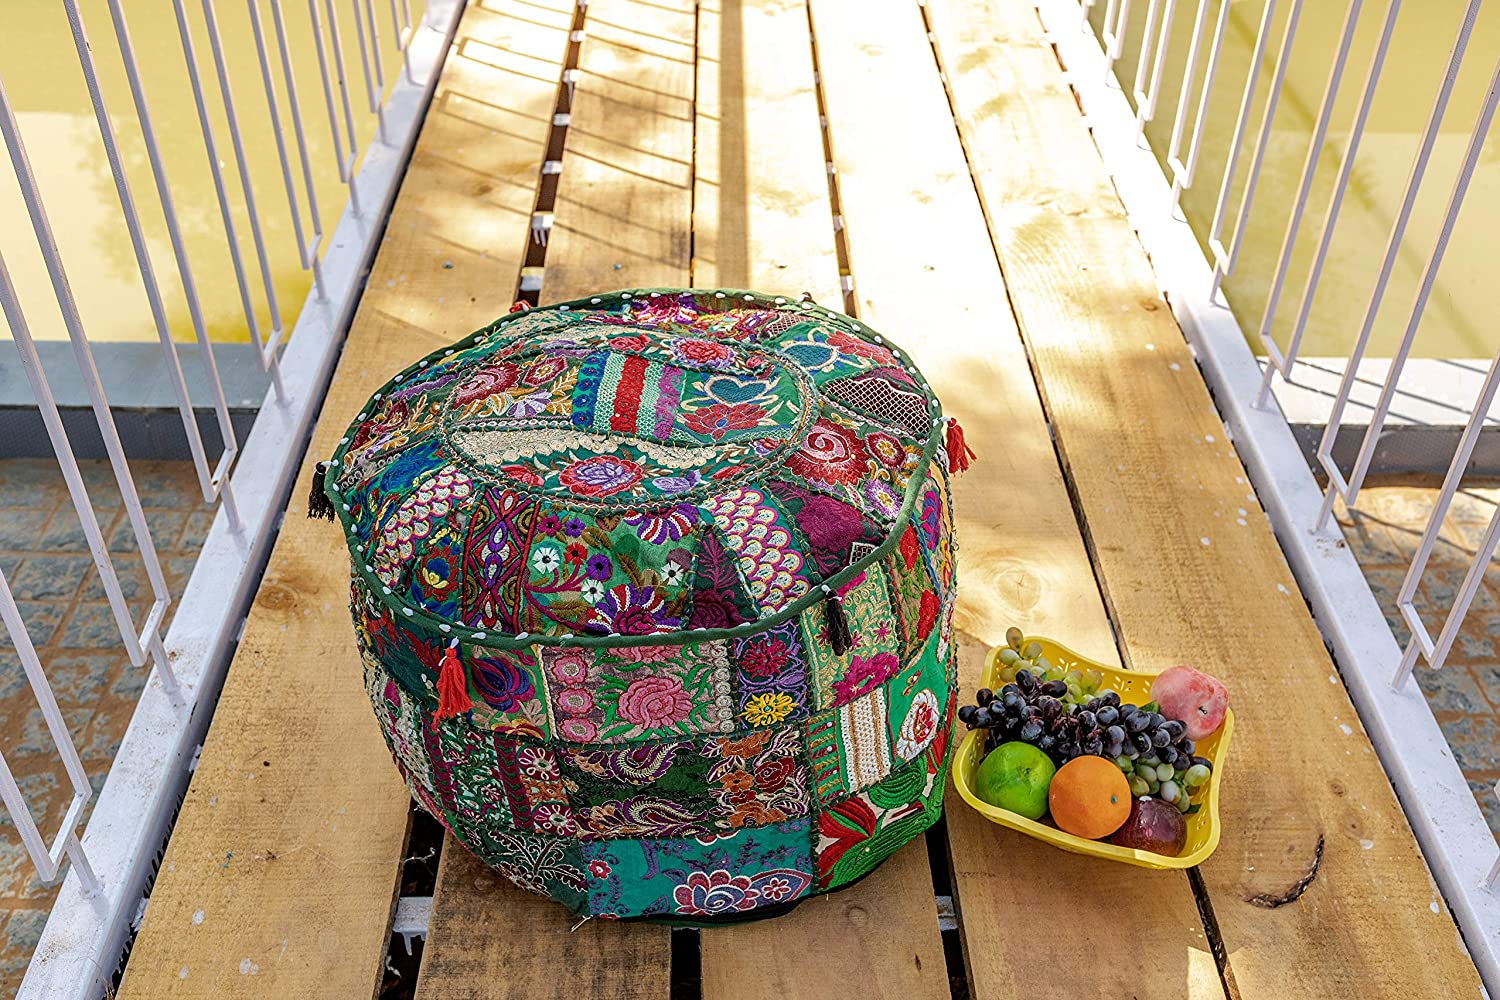 THE ART Limited time cheap sale BOX Cotton San Jose Mall Patchwork Vintage S Boho Bean Bag Embroidered